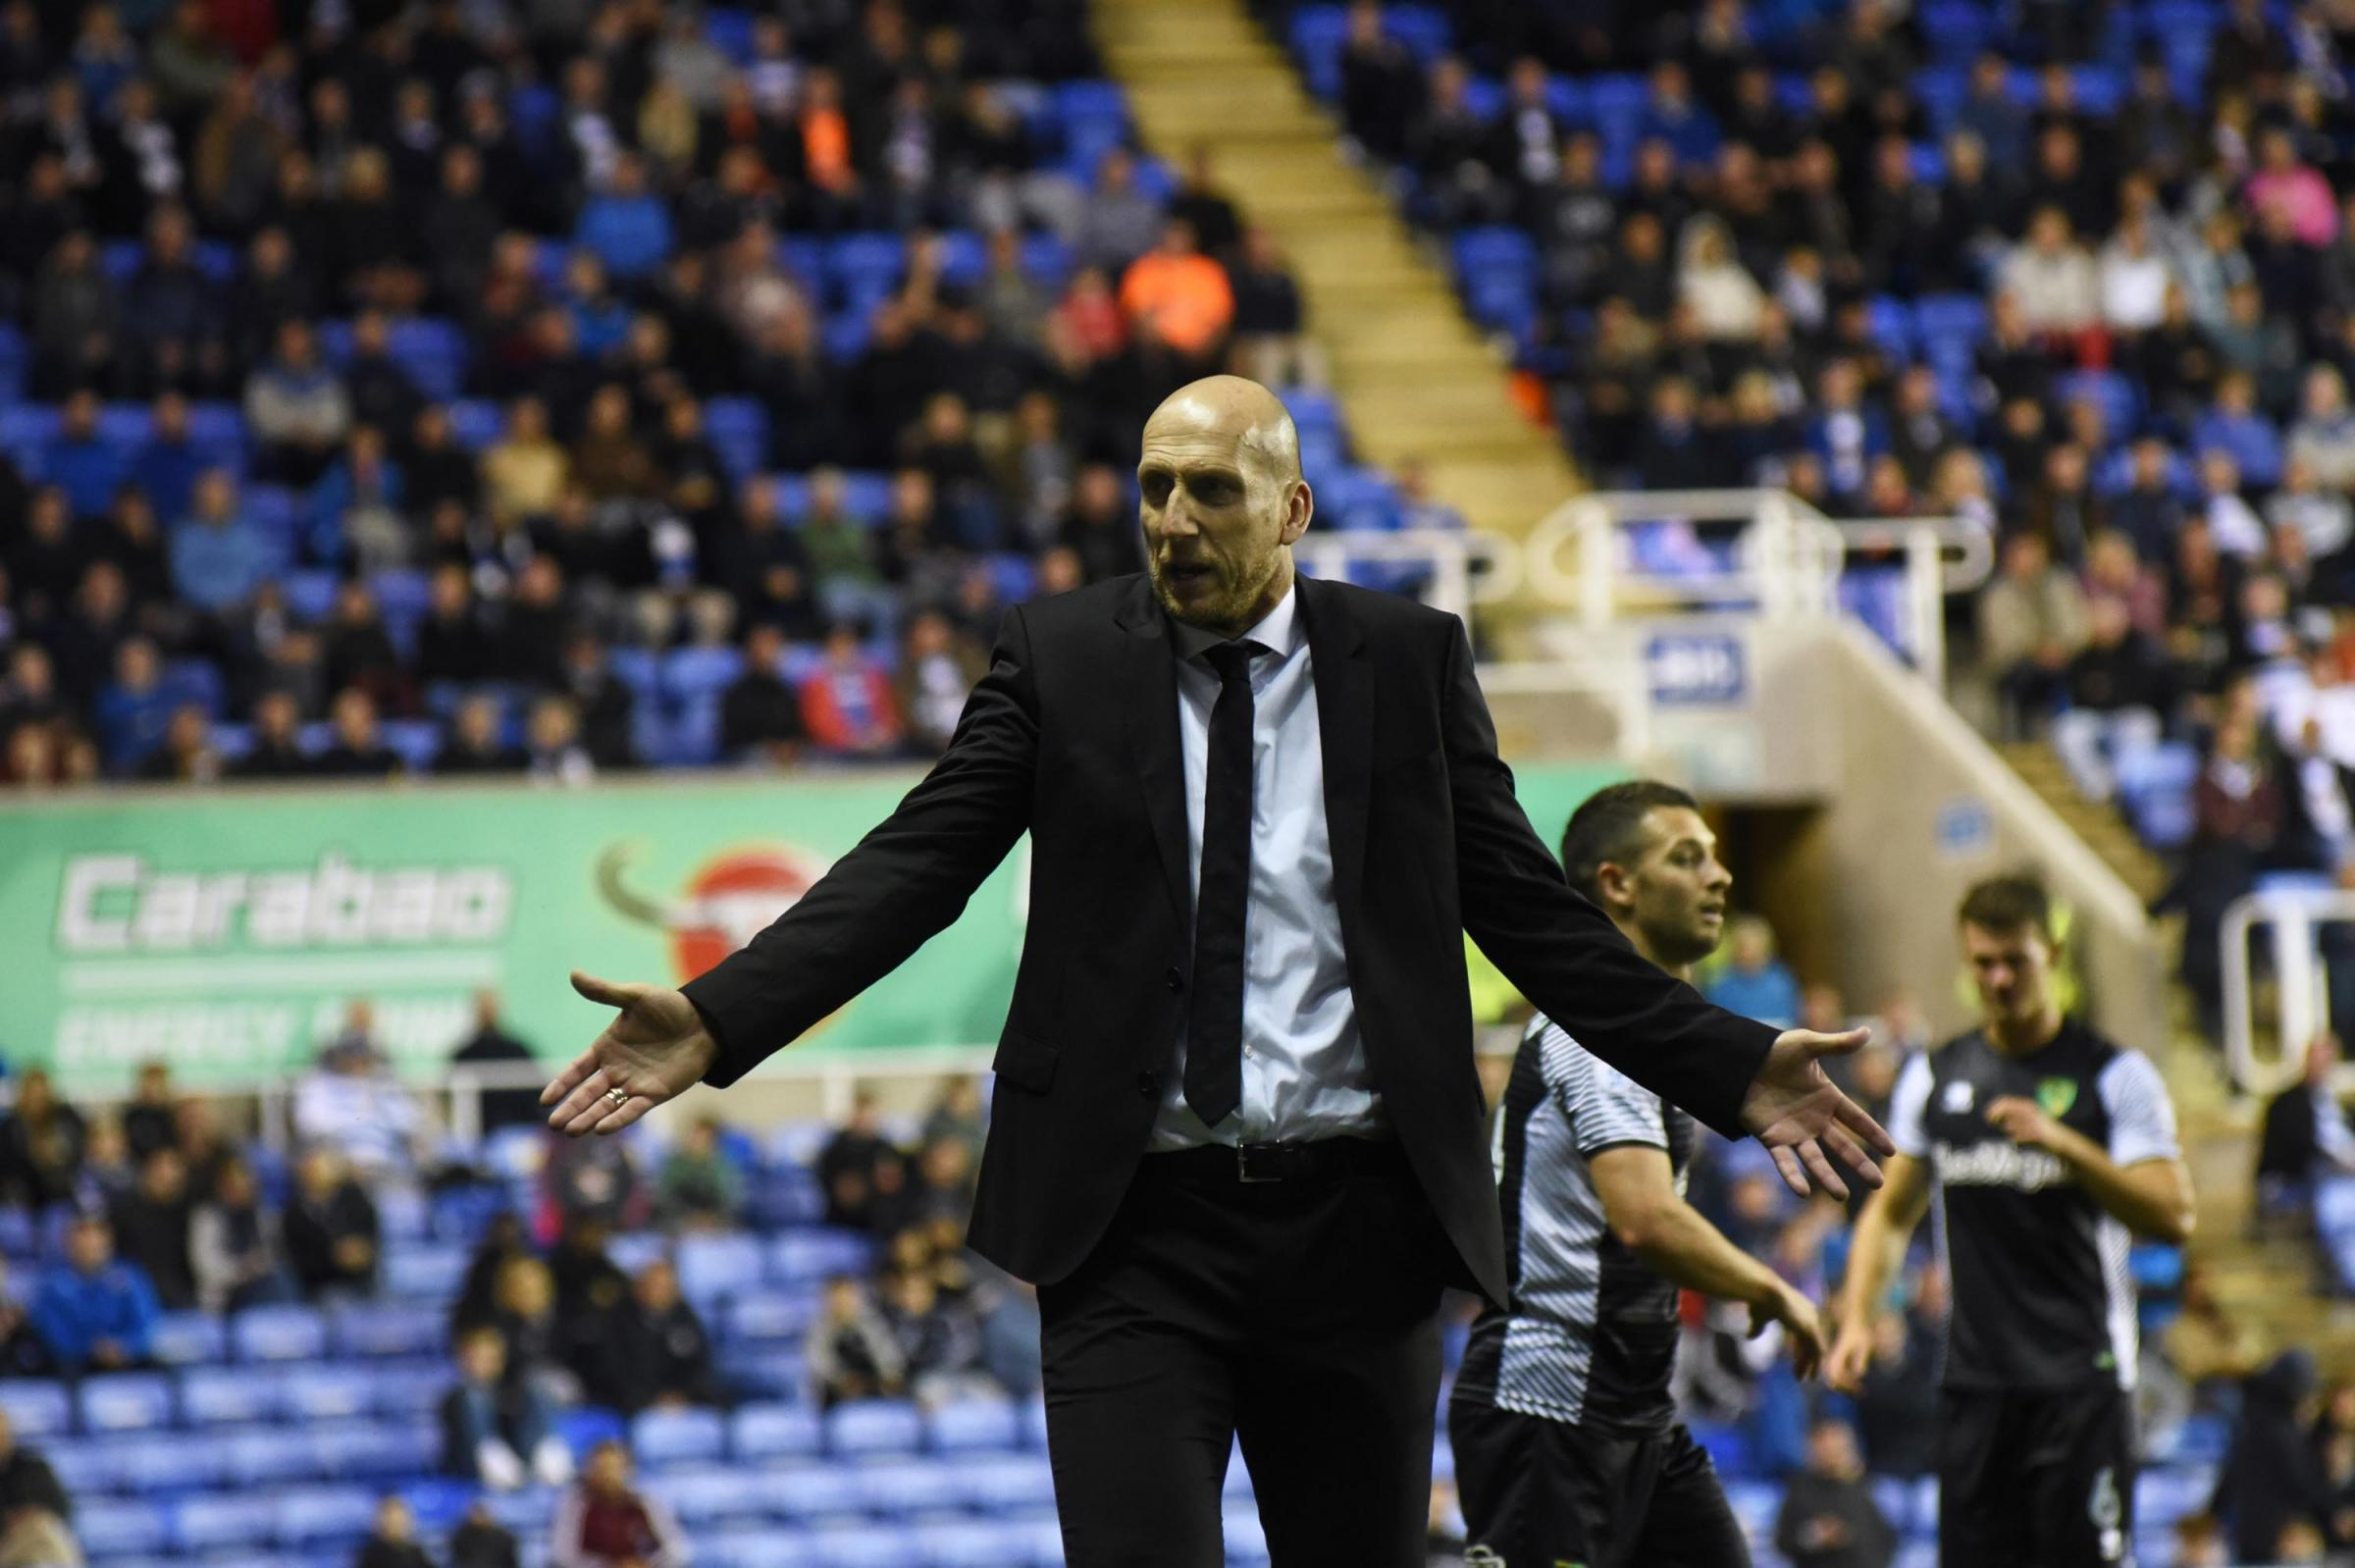 READING FC: Jaap Stam admits players prefer playing away from home and urges fans to back Royals